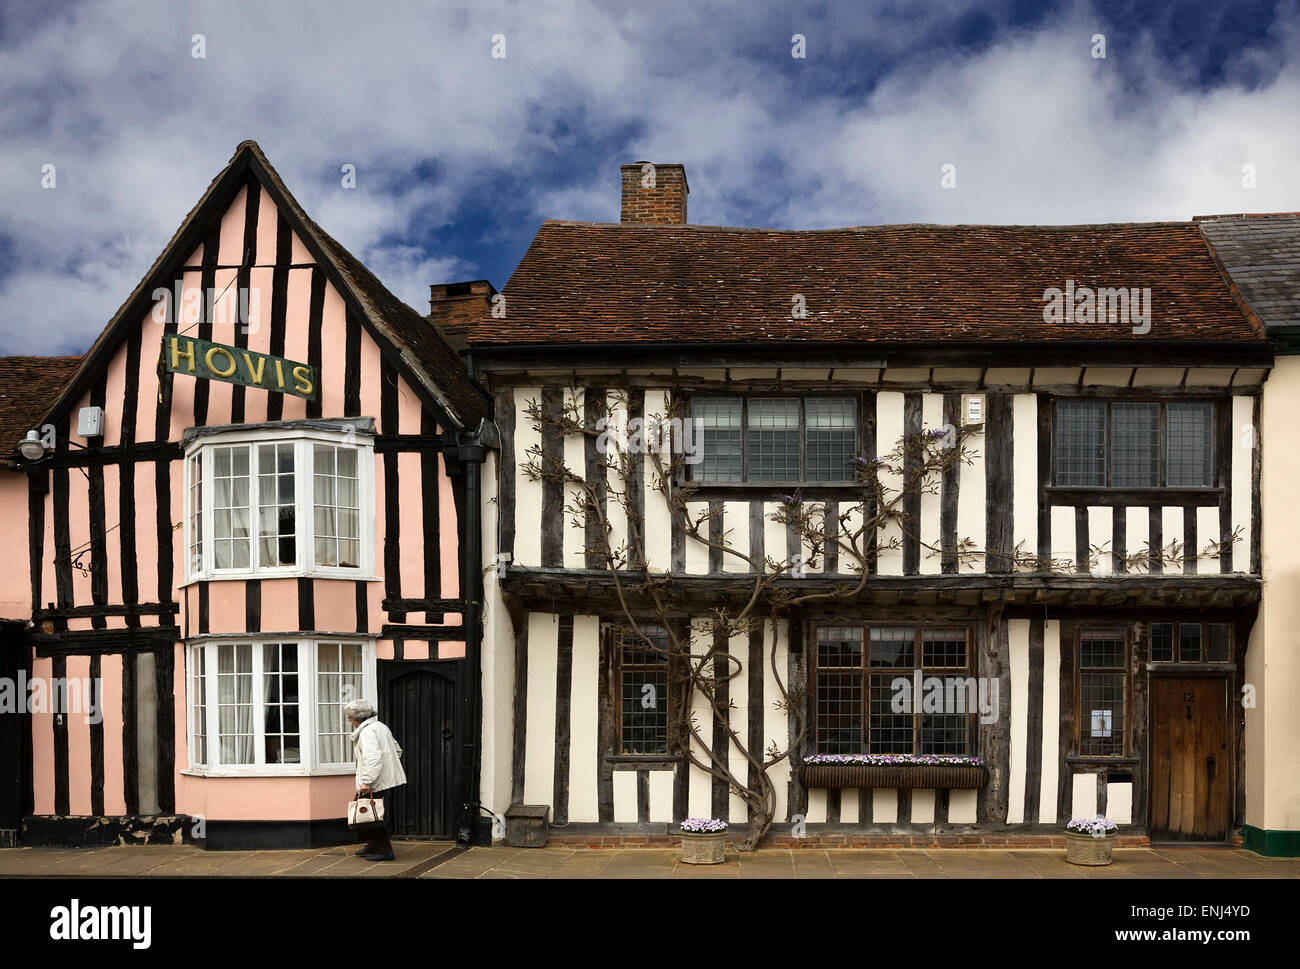 Half-timbered houses in Lavenham. - Stock Image